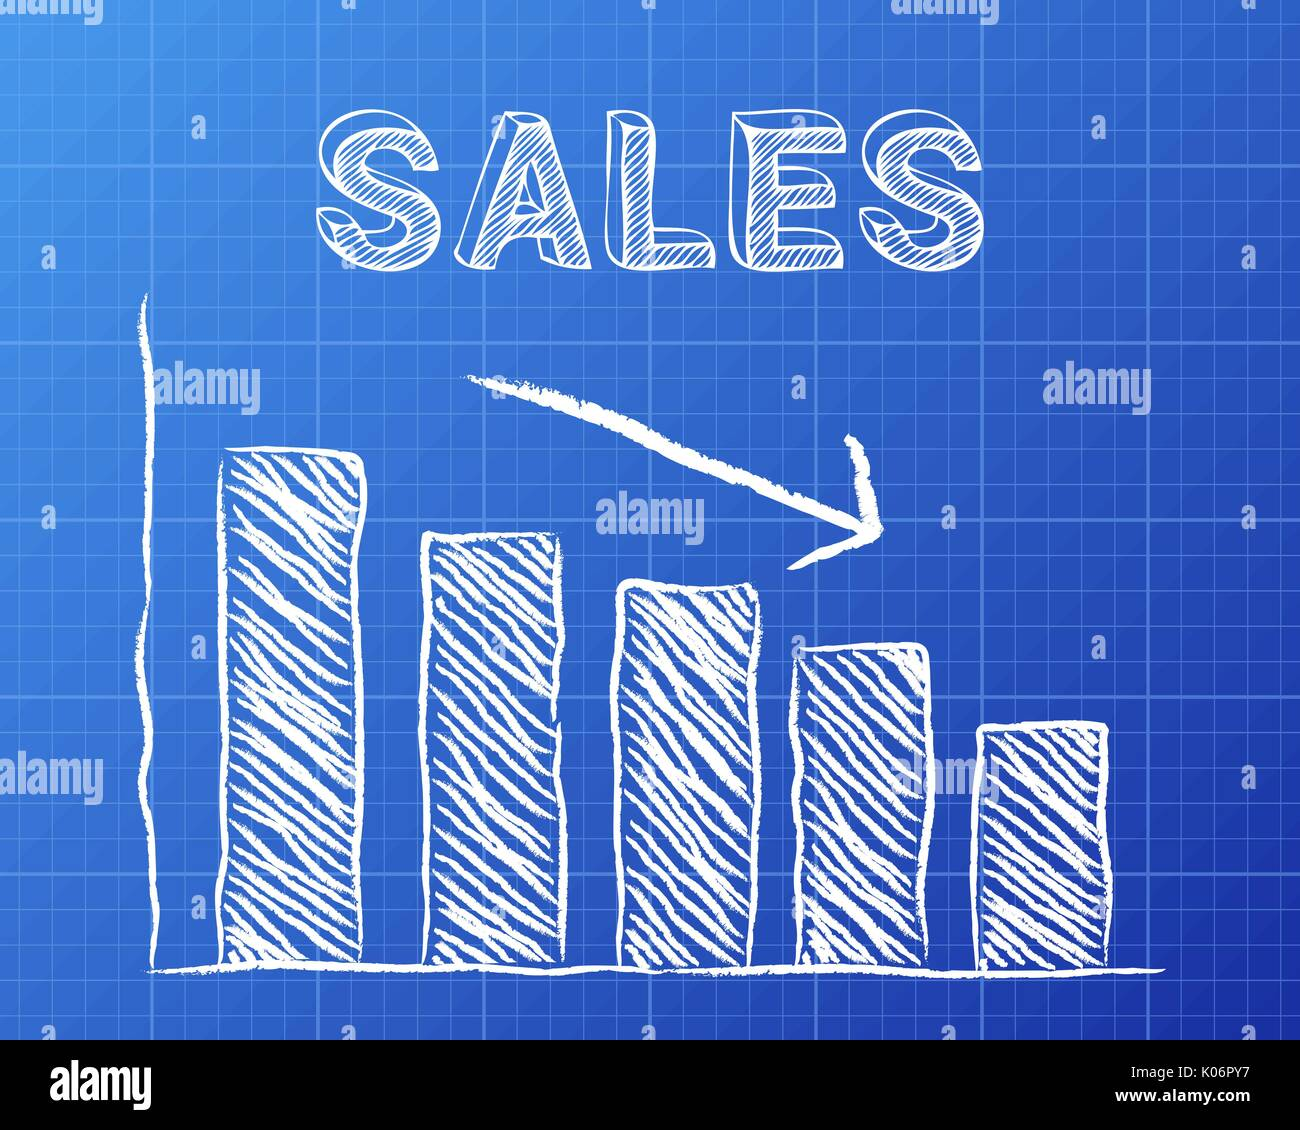 Decreasing graph and sales word on blueprint background stock vector decreasing graph and sales word on blueprint background malvernweather Gallery